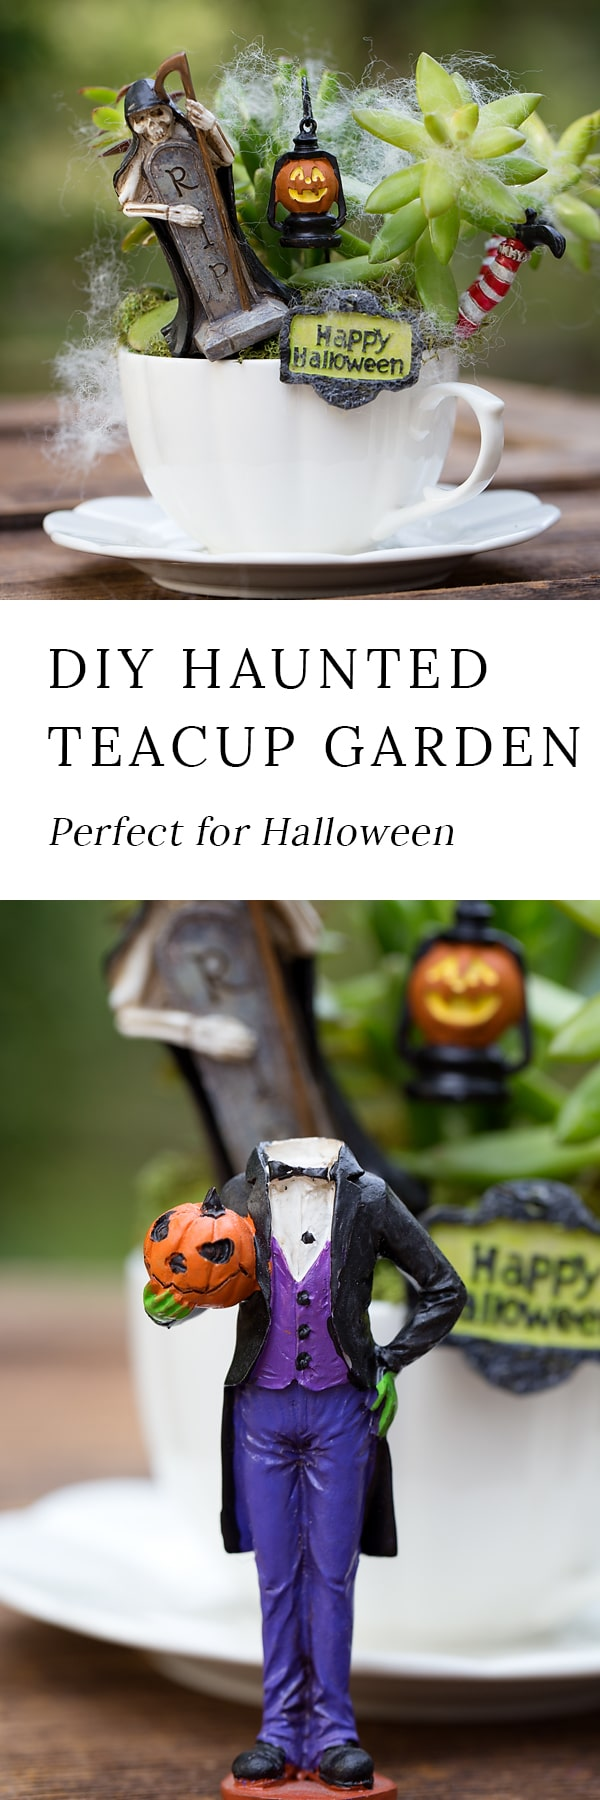 Just in time for Halloween, learn how to make a Haunted Halloween Teacup Garden with succulents, a teacup and saucer, and Halloween miniatures. It's the perfect Halloween craft for kids!